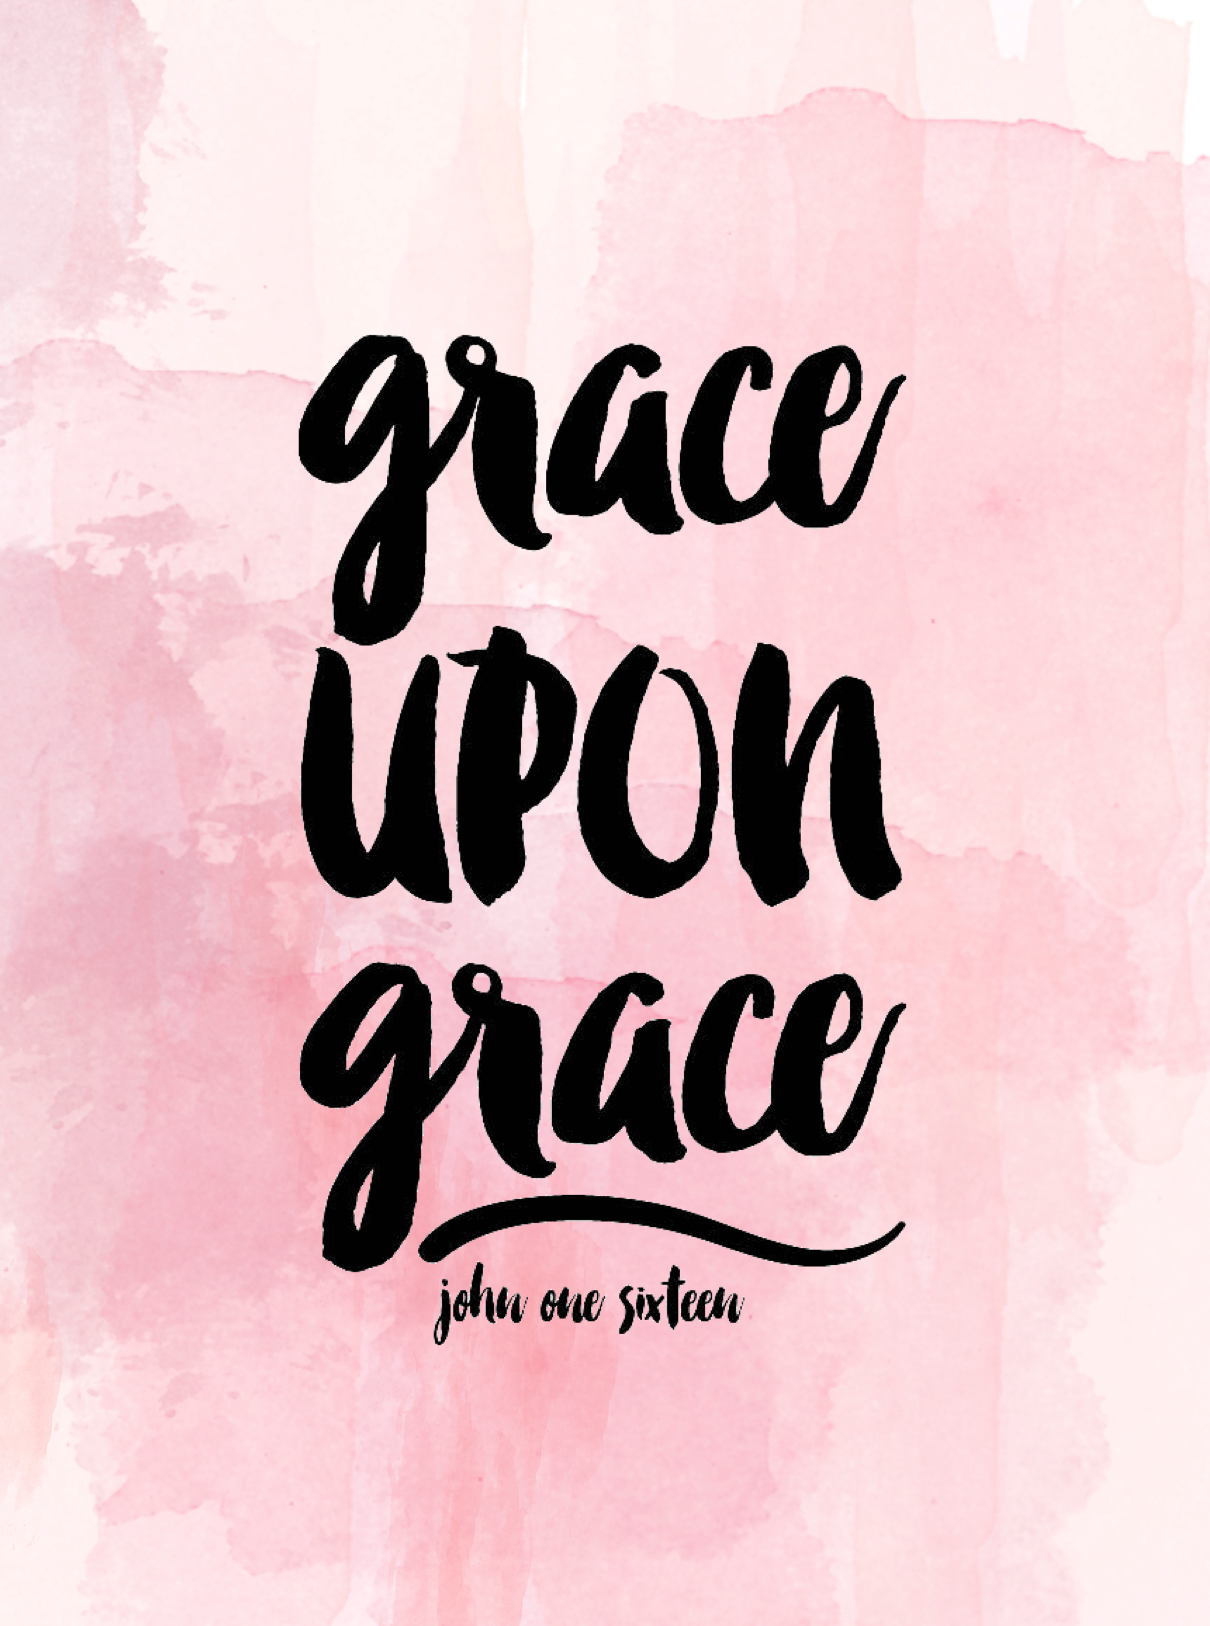 Grace upon grace john 1 16 wallpaper christian wallpaper - Bible verse background iphone ...